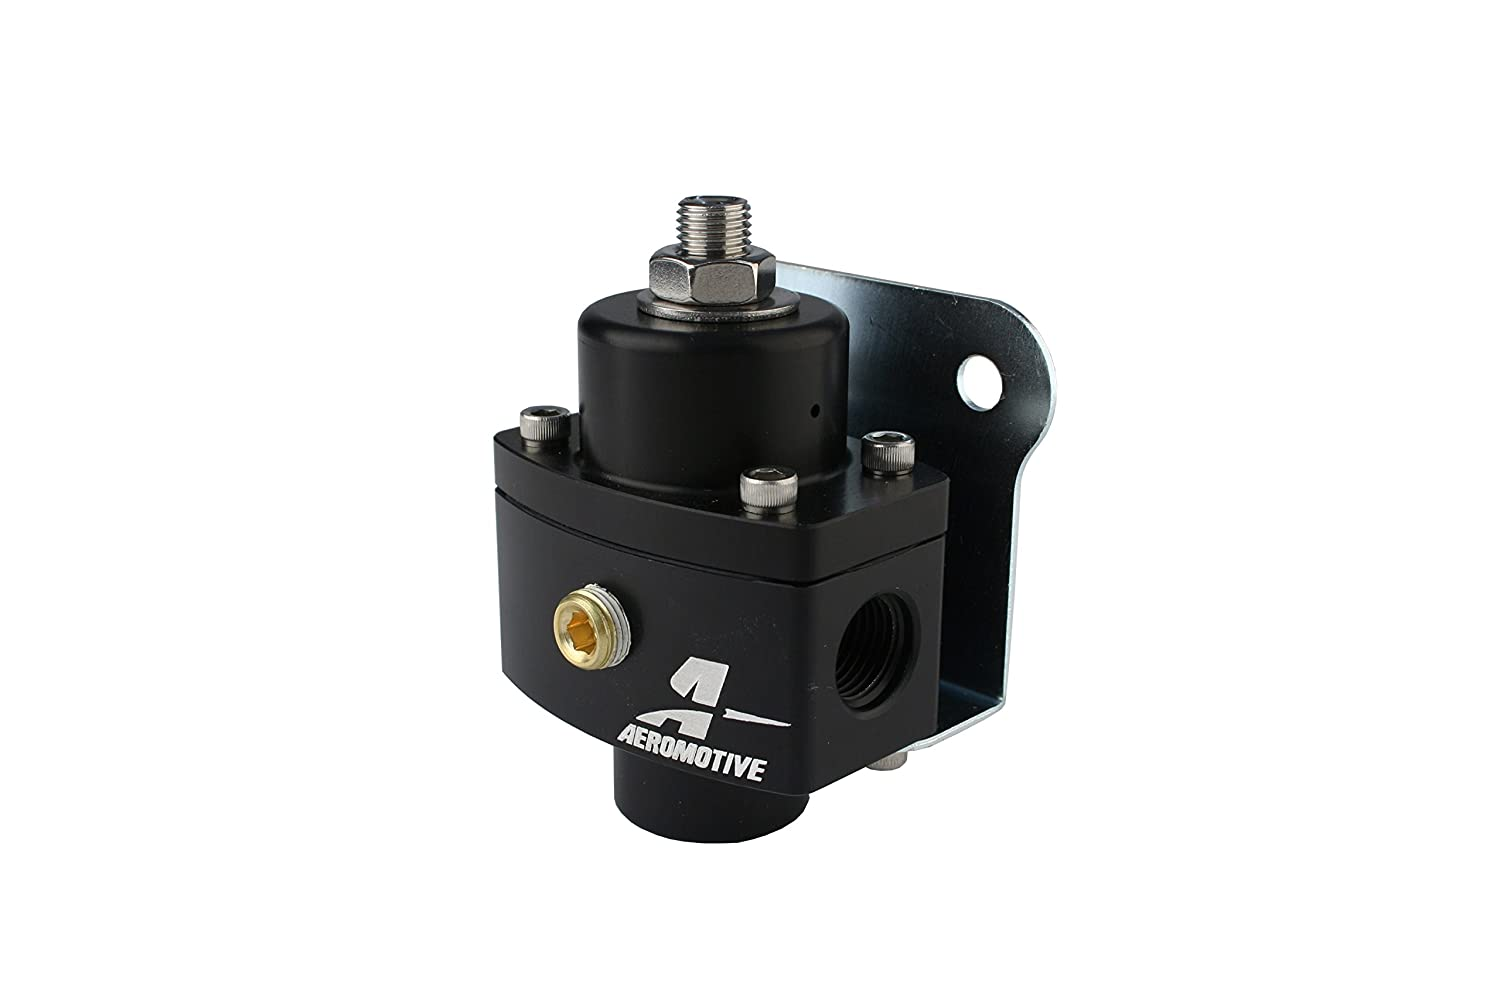 Aeromotive 13211 Regulator Marine 2-Port AN-06 Carbureted